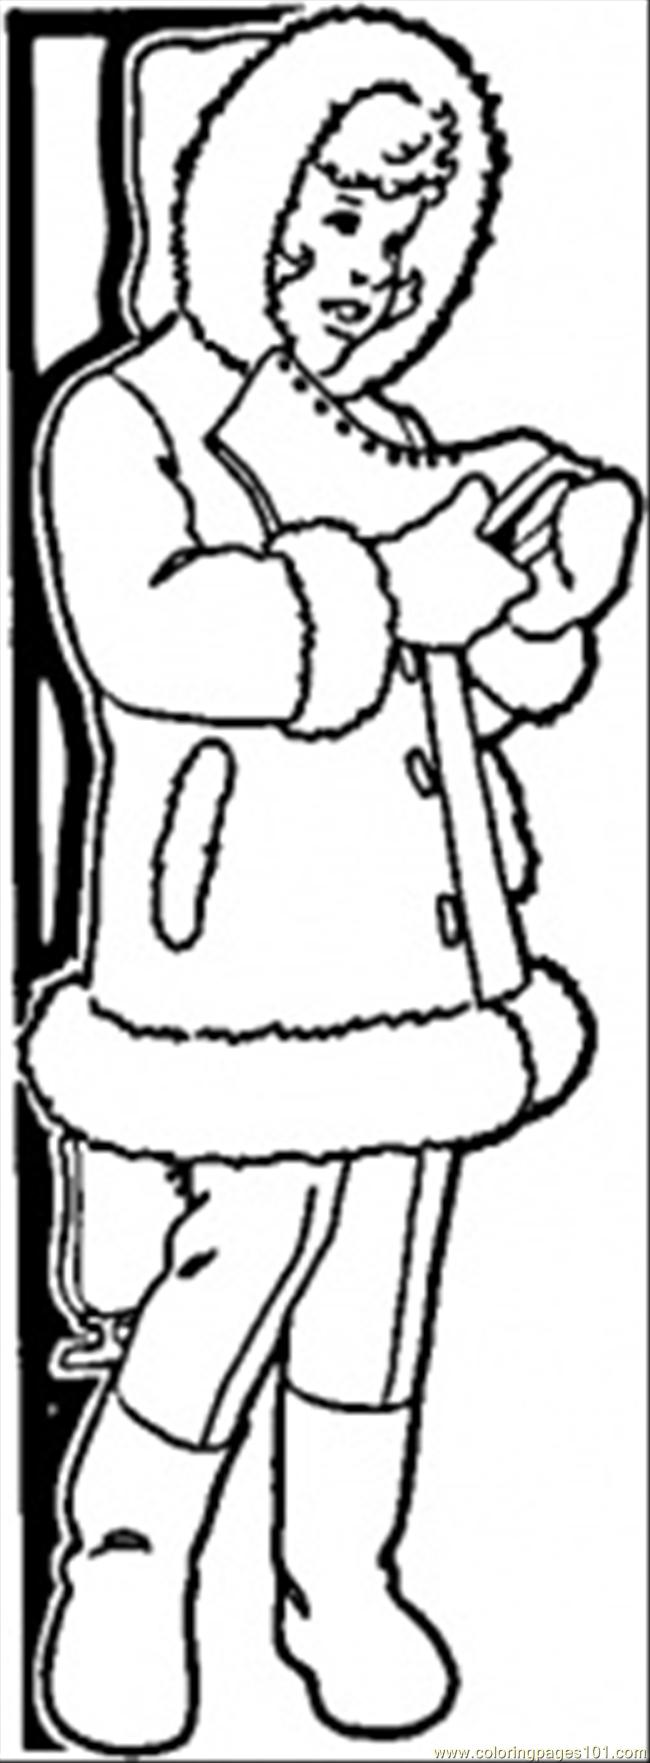 Warm Winter Coat Coloring Page Free Clothing Coloring